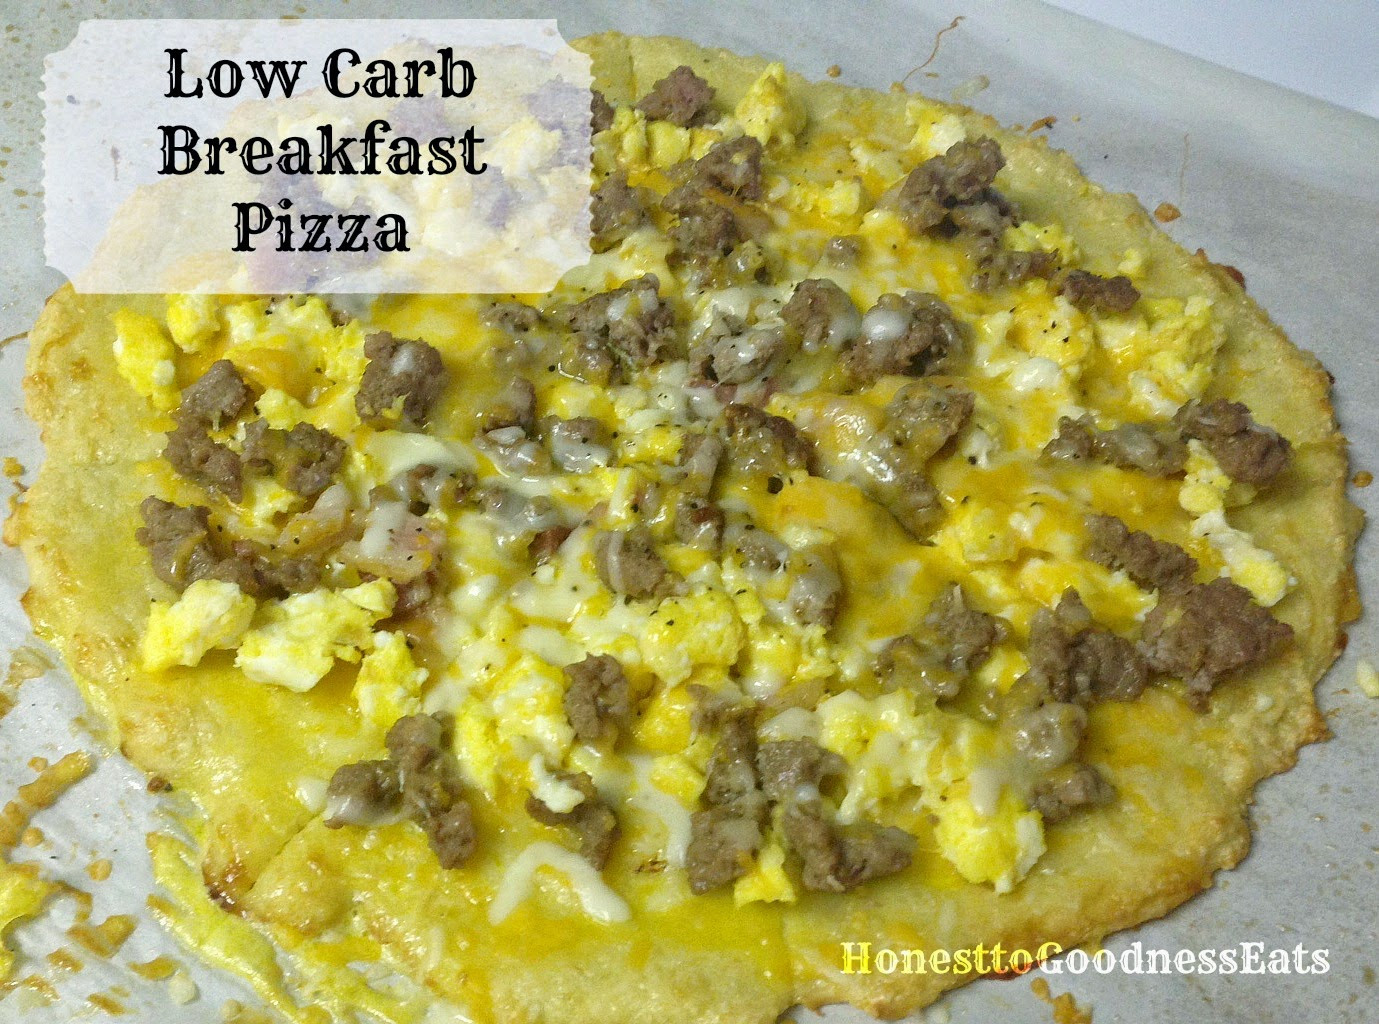 Low Carb Breakfast Pizza  Honest to Goodness Eats Low Carb Breakfast Pizza